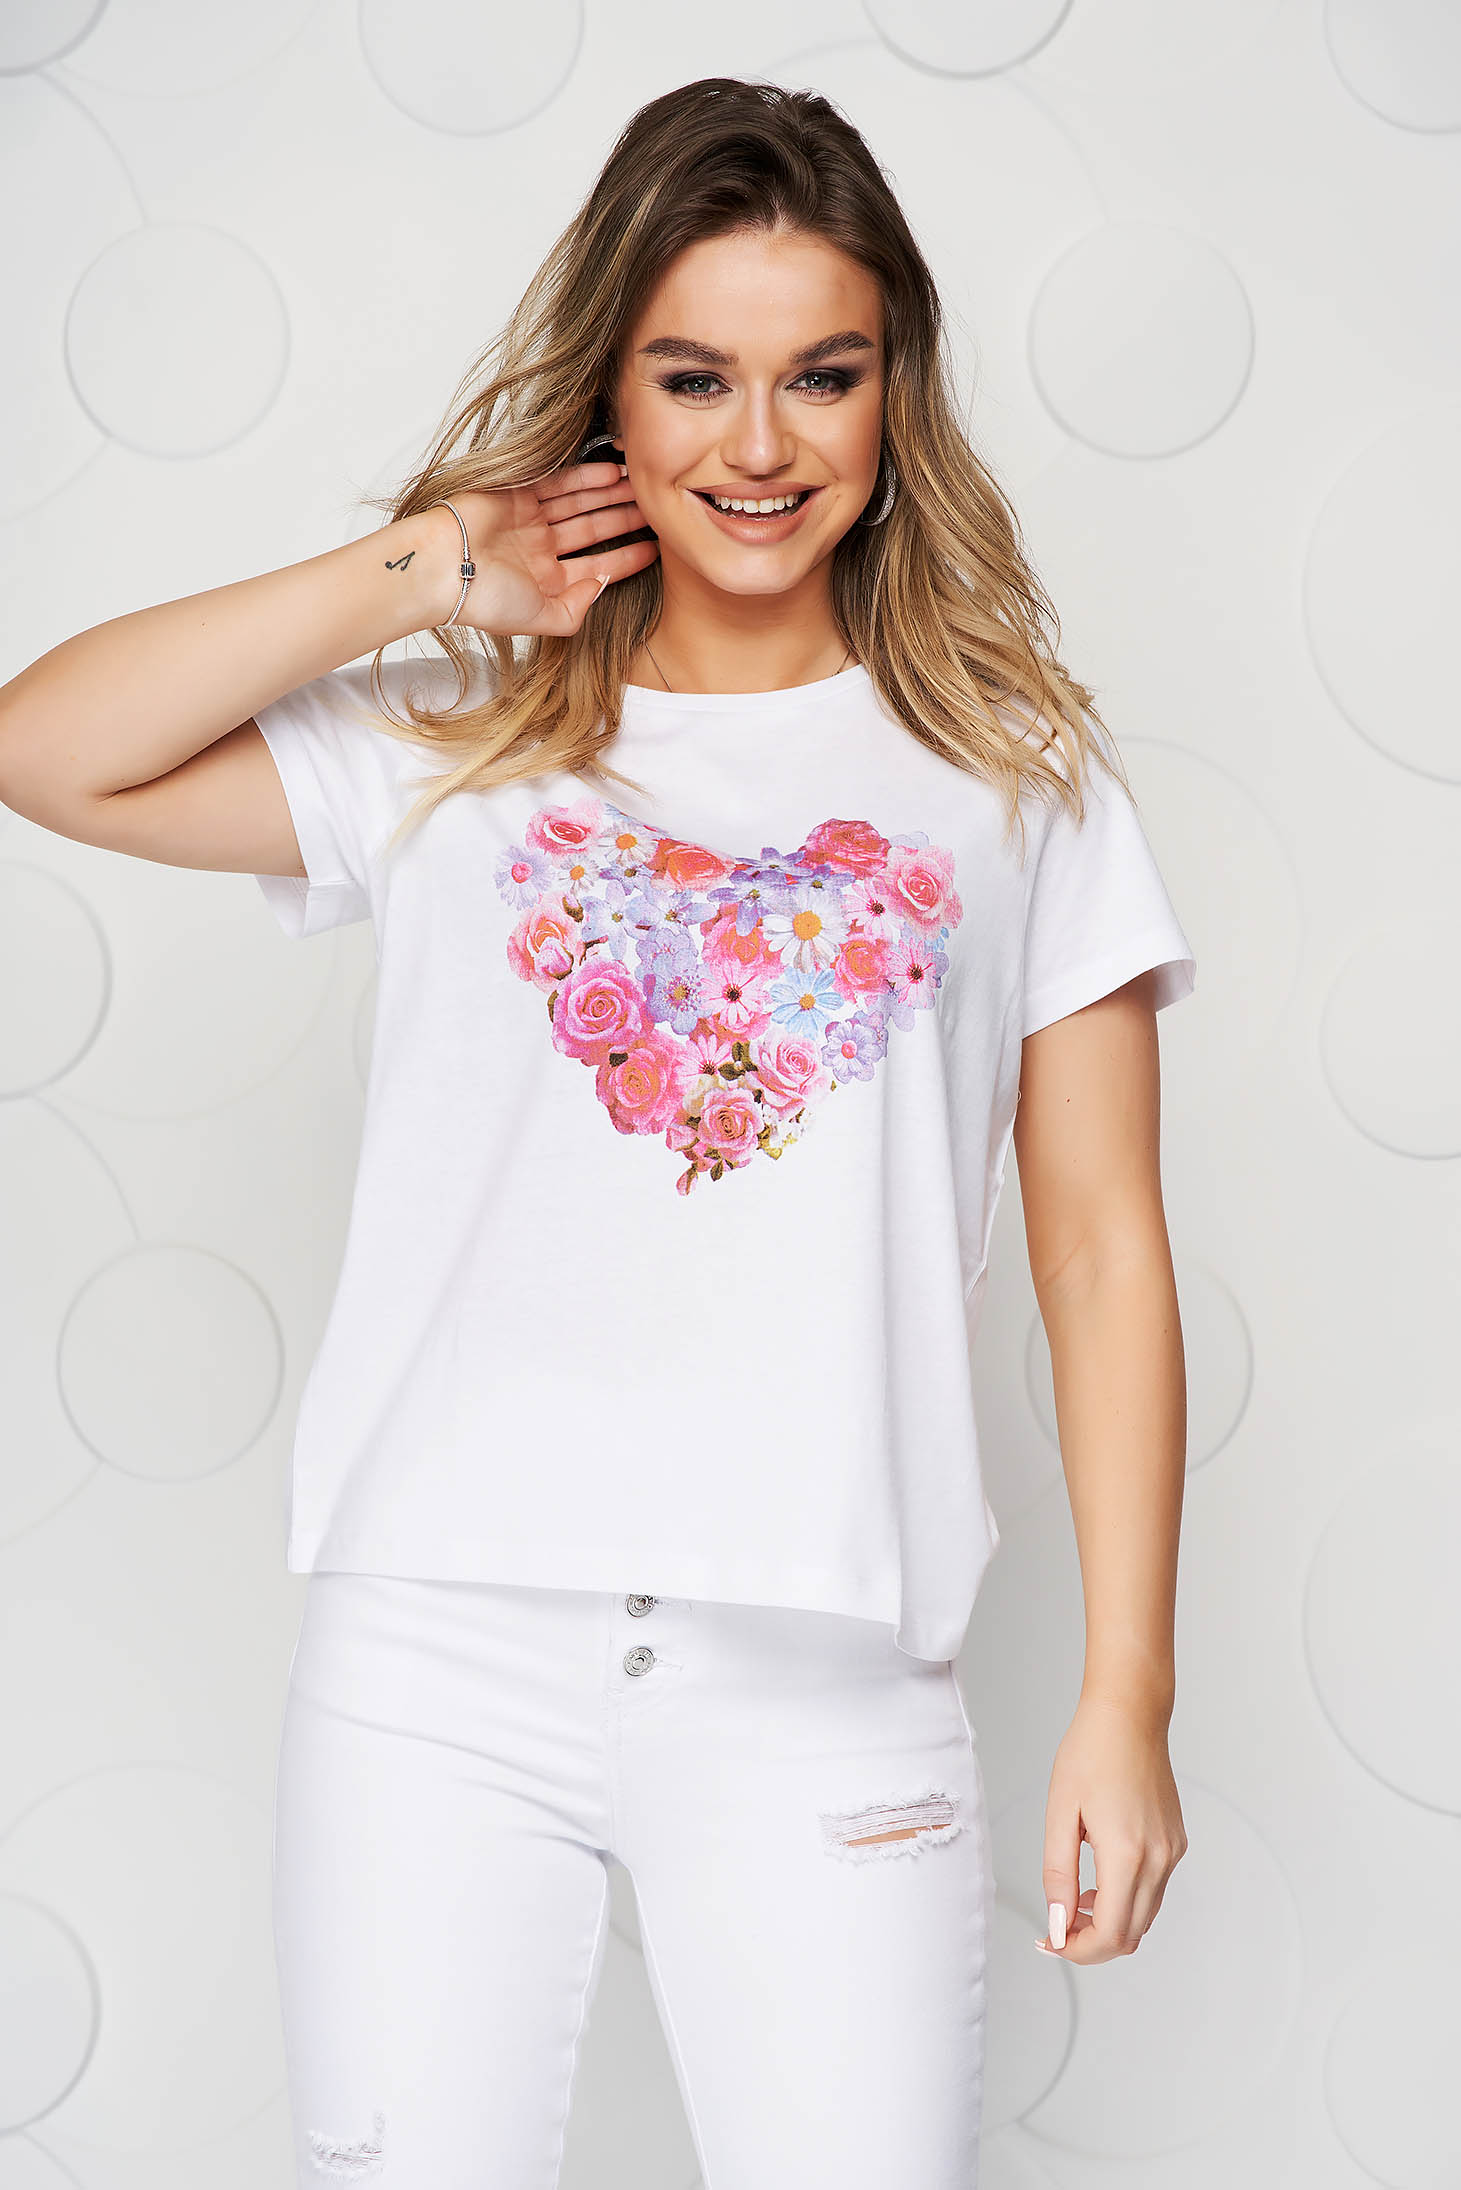 White t-shirt with graphic details cotton loose fit